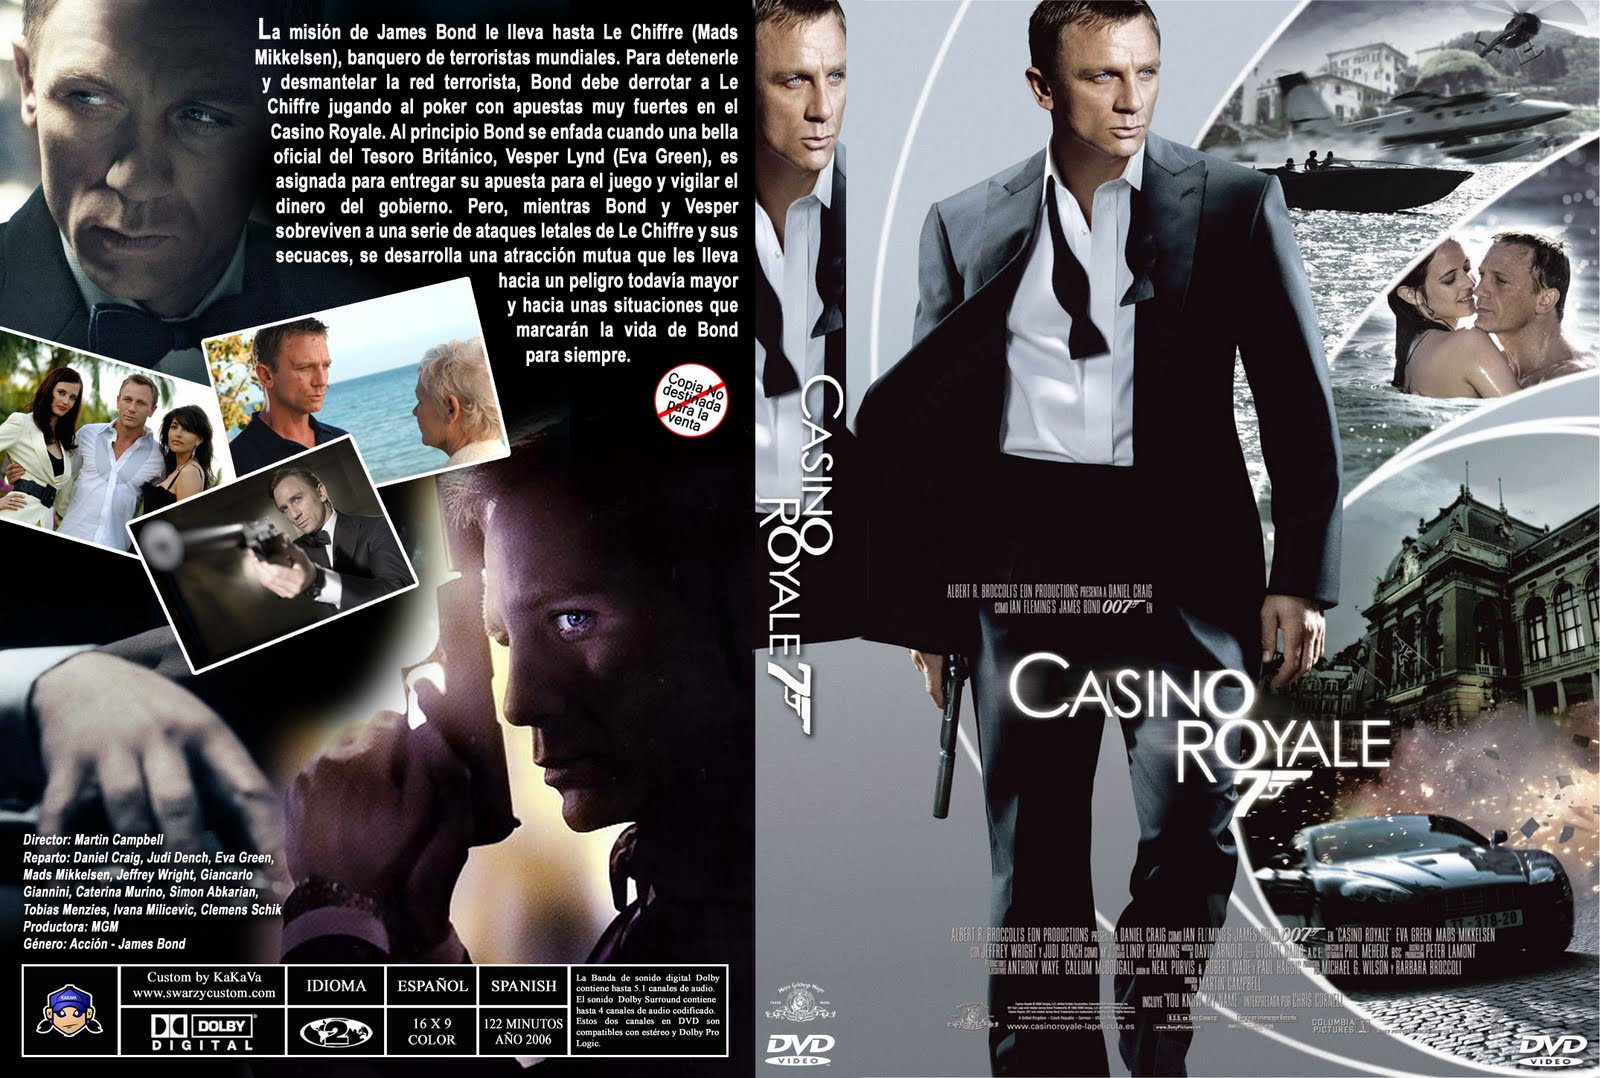 Ver pelicula casino royale 007 online sports fever casino